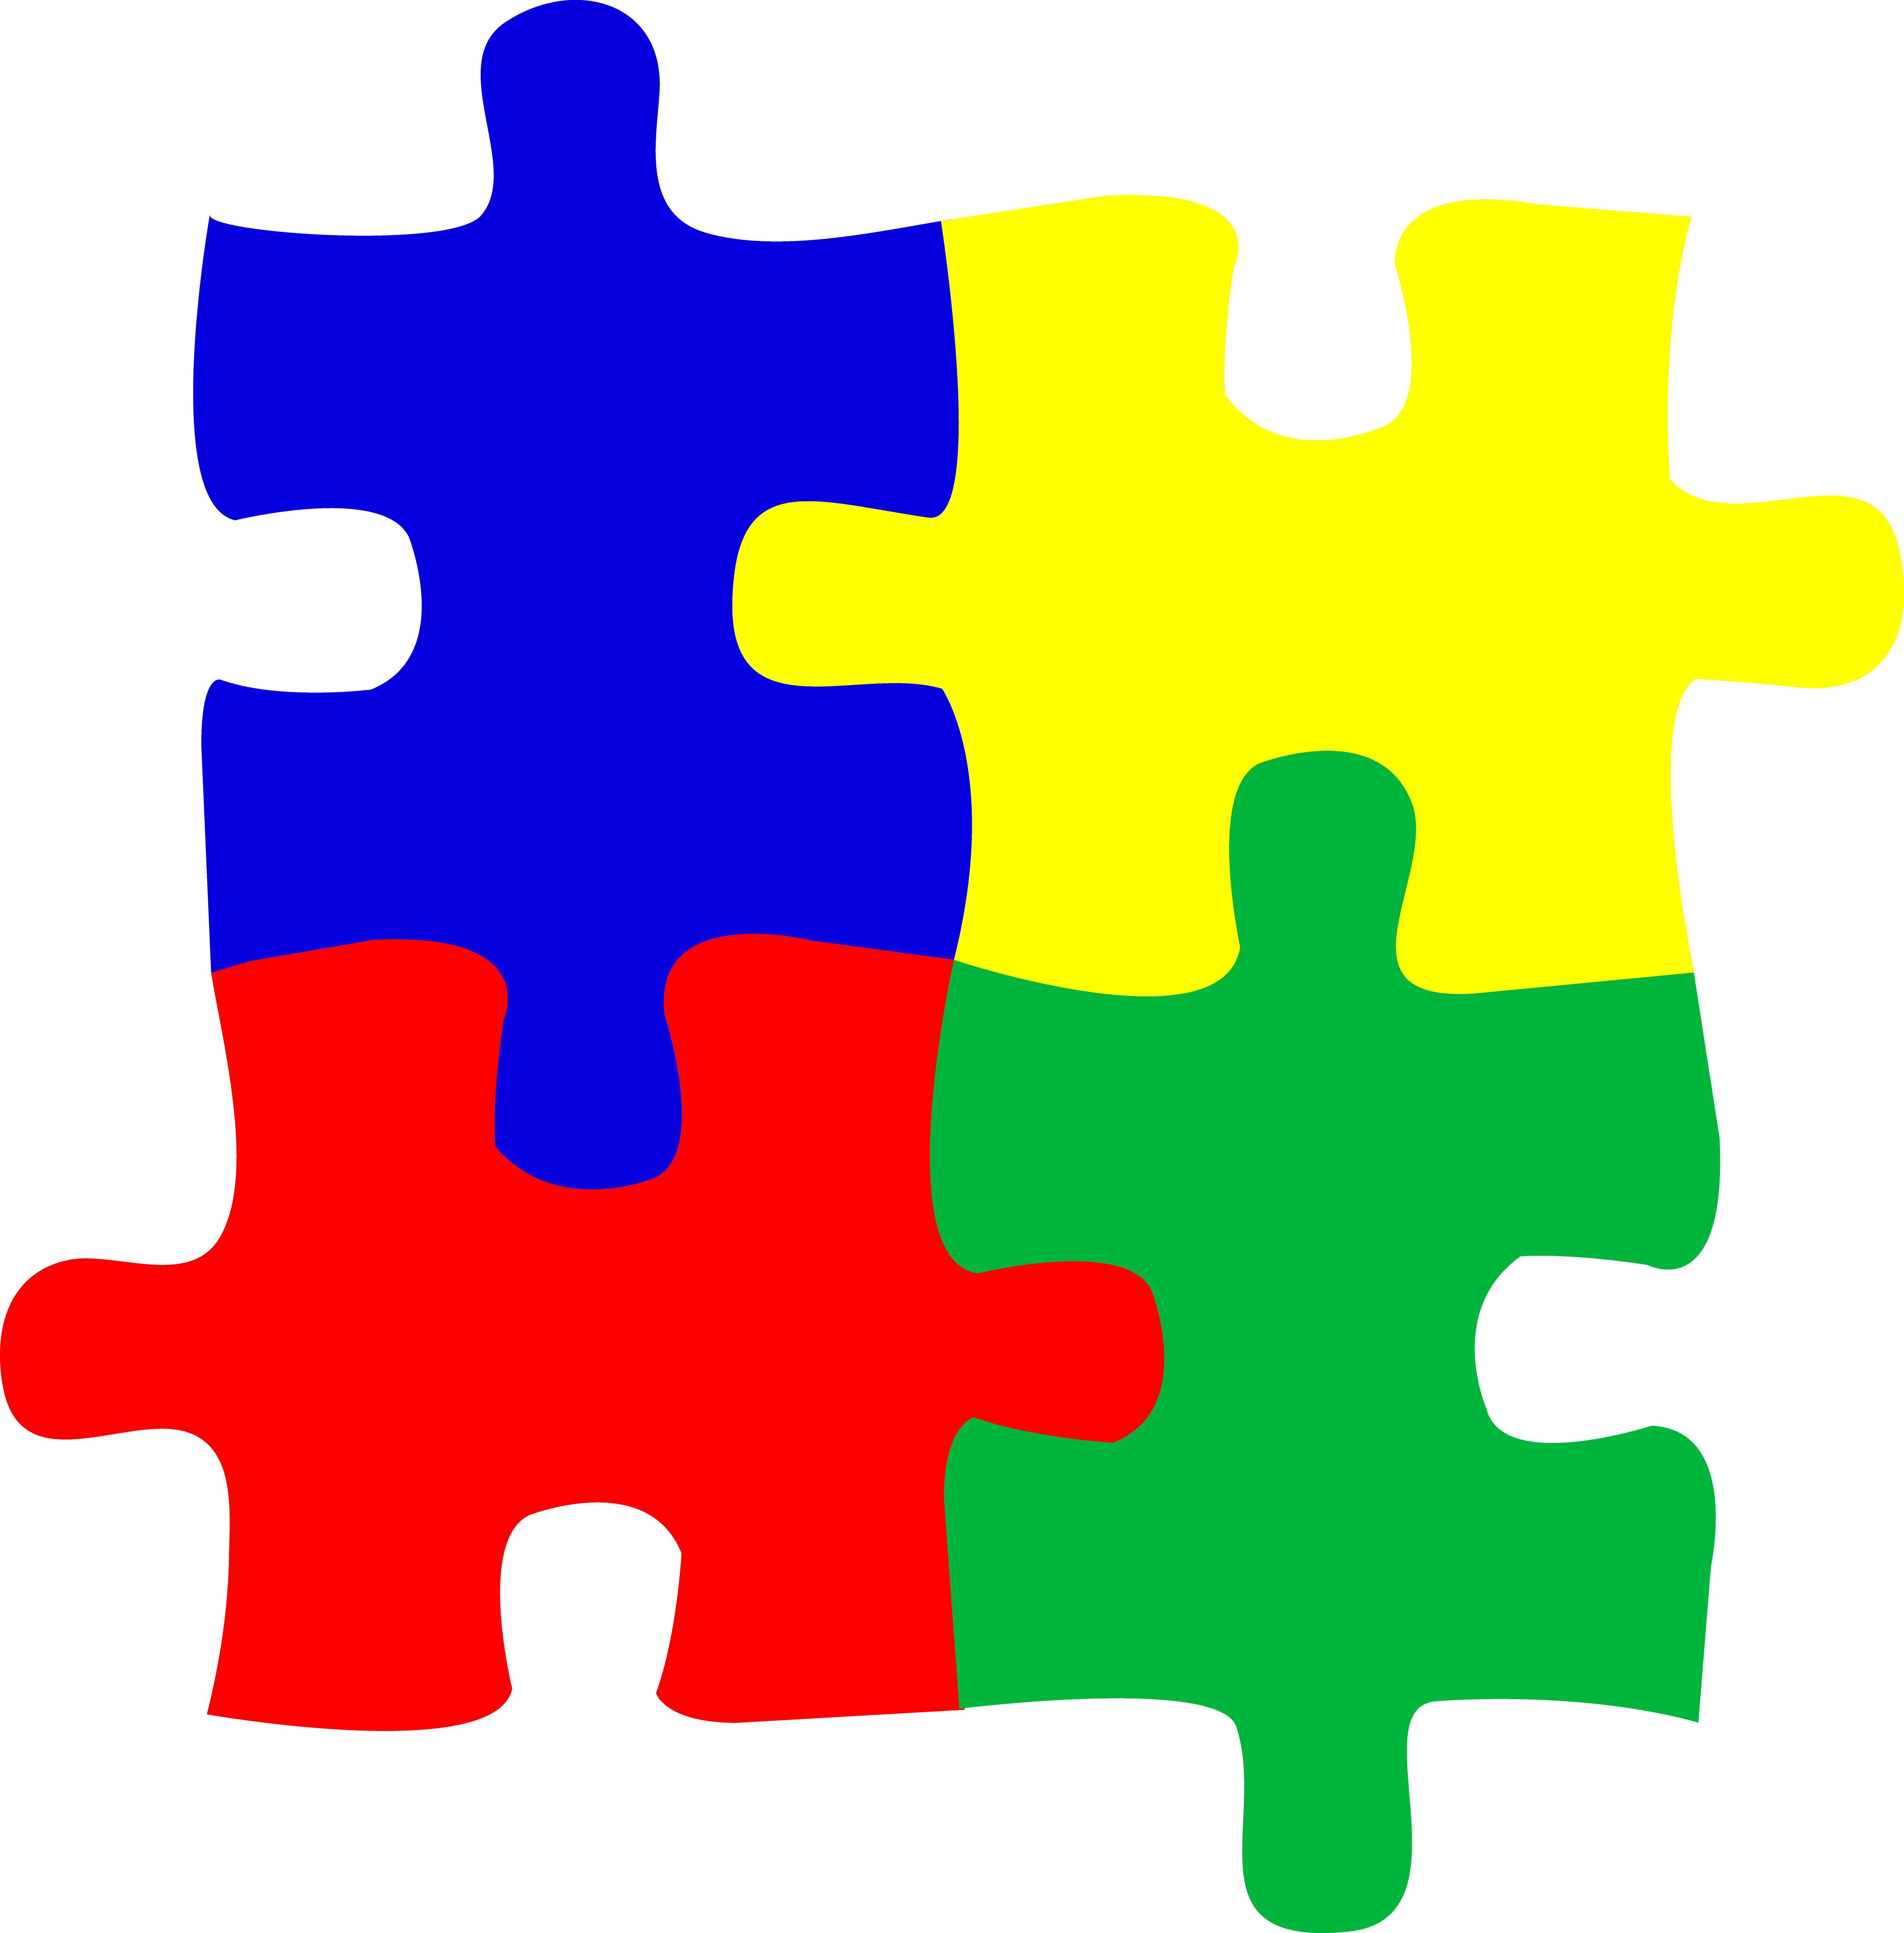 Puzzle clipart #4, Download drawings